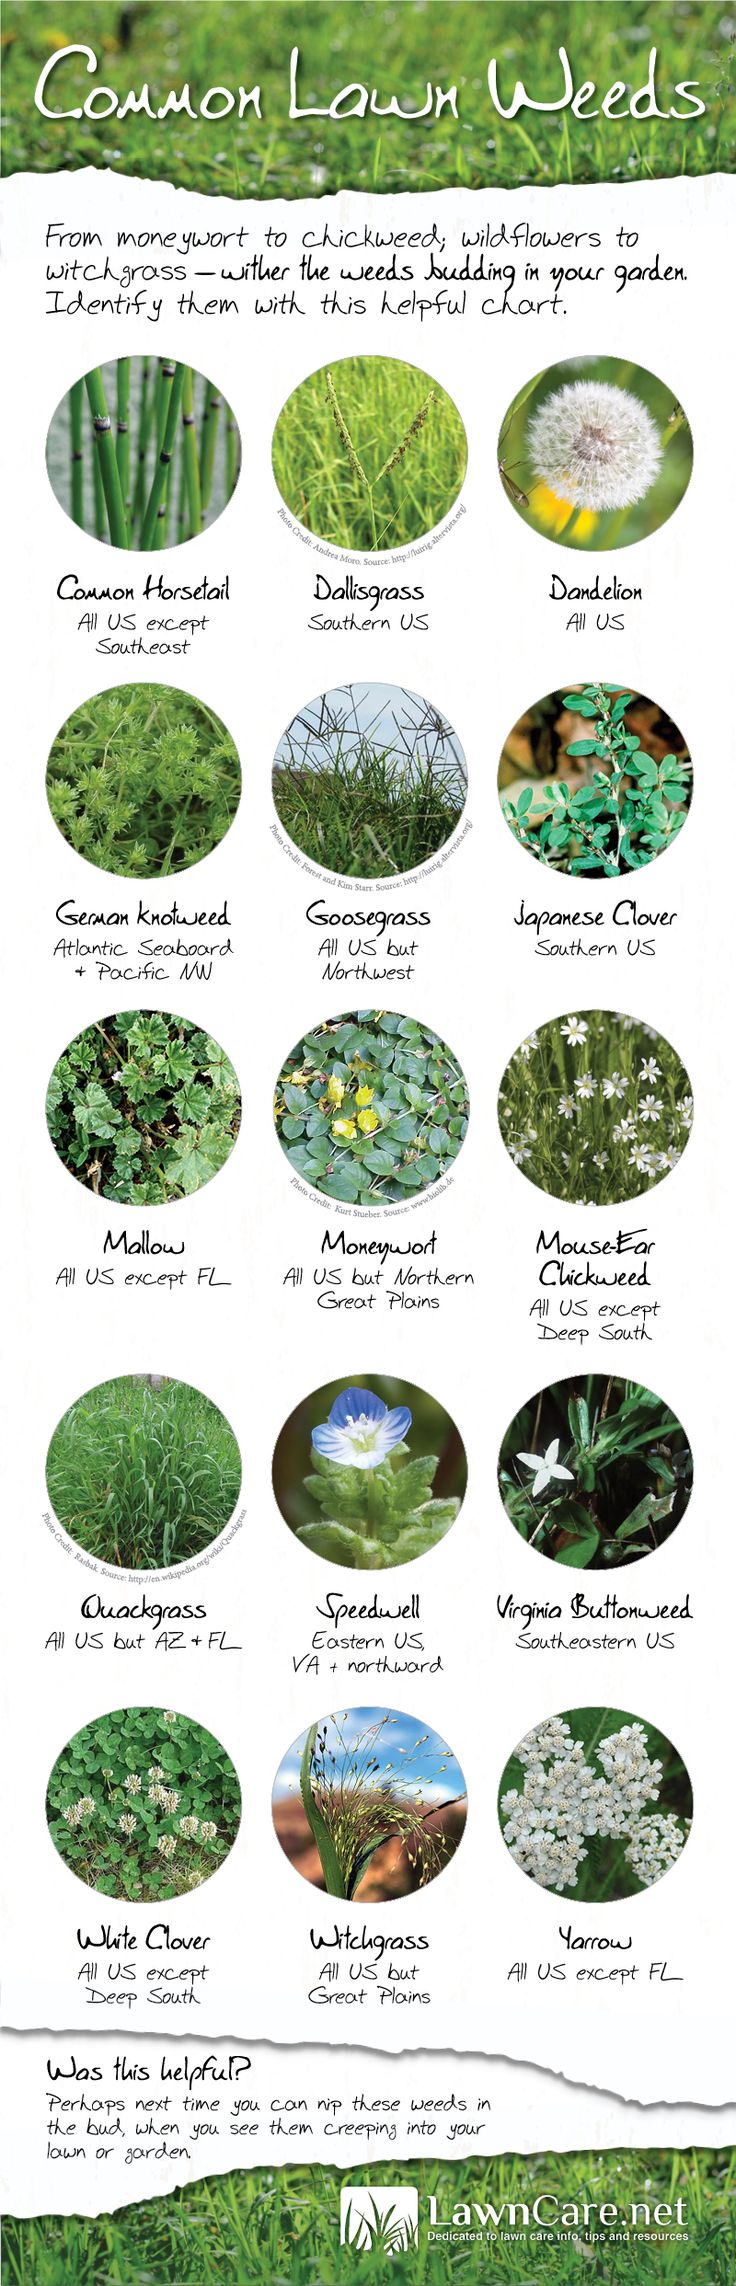 Types of lawn grass weeds - Find Out What Types Of Weeds Are Plaguing Your Lawn With This Handy Weed Identification Guide